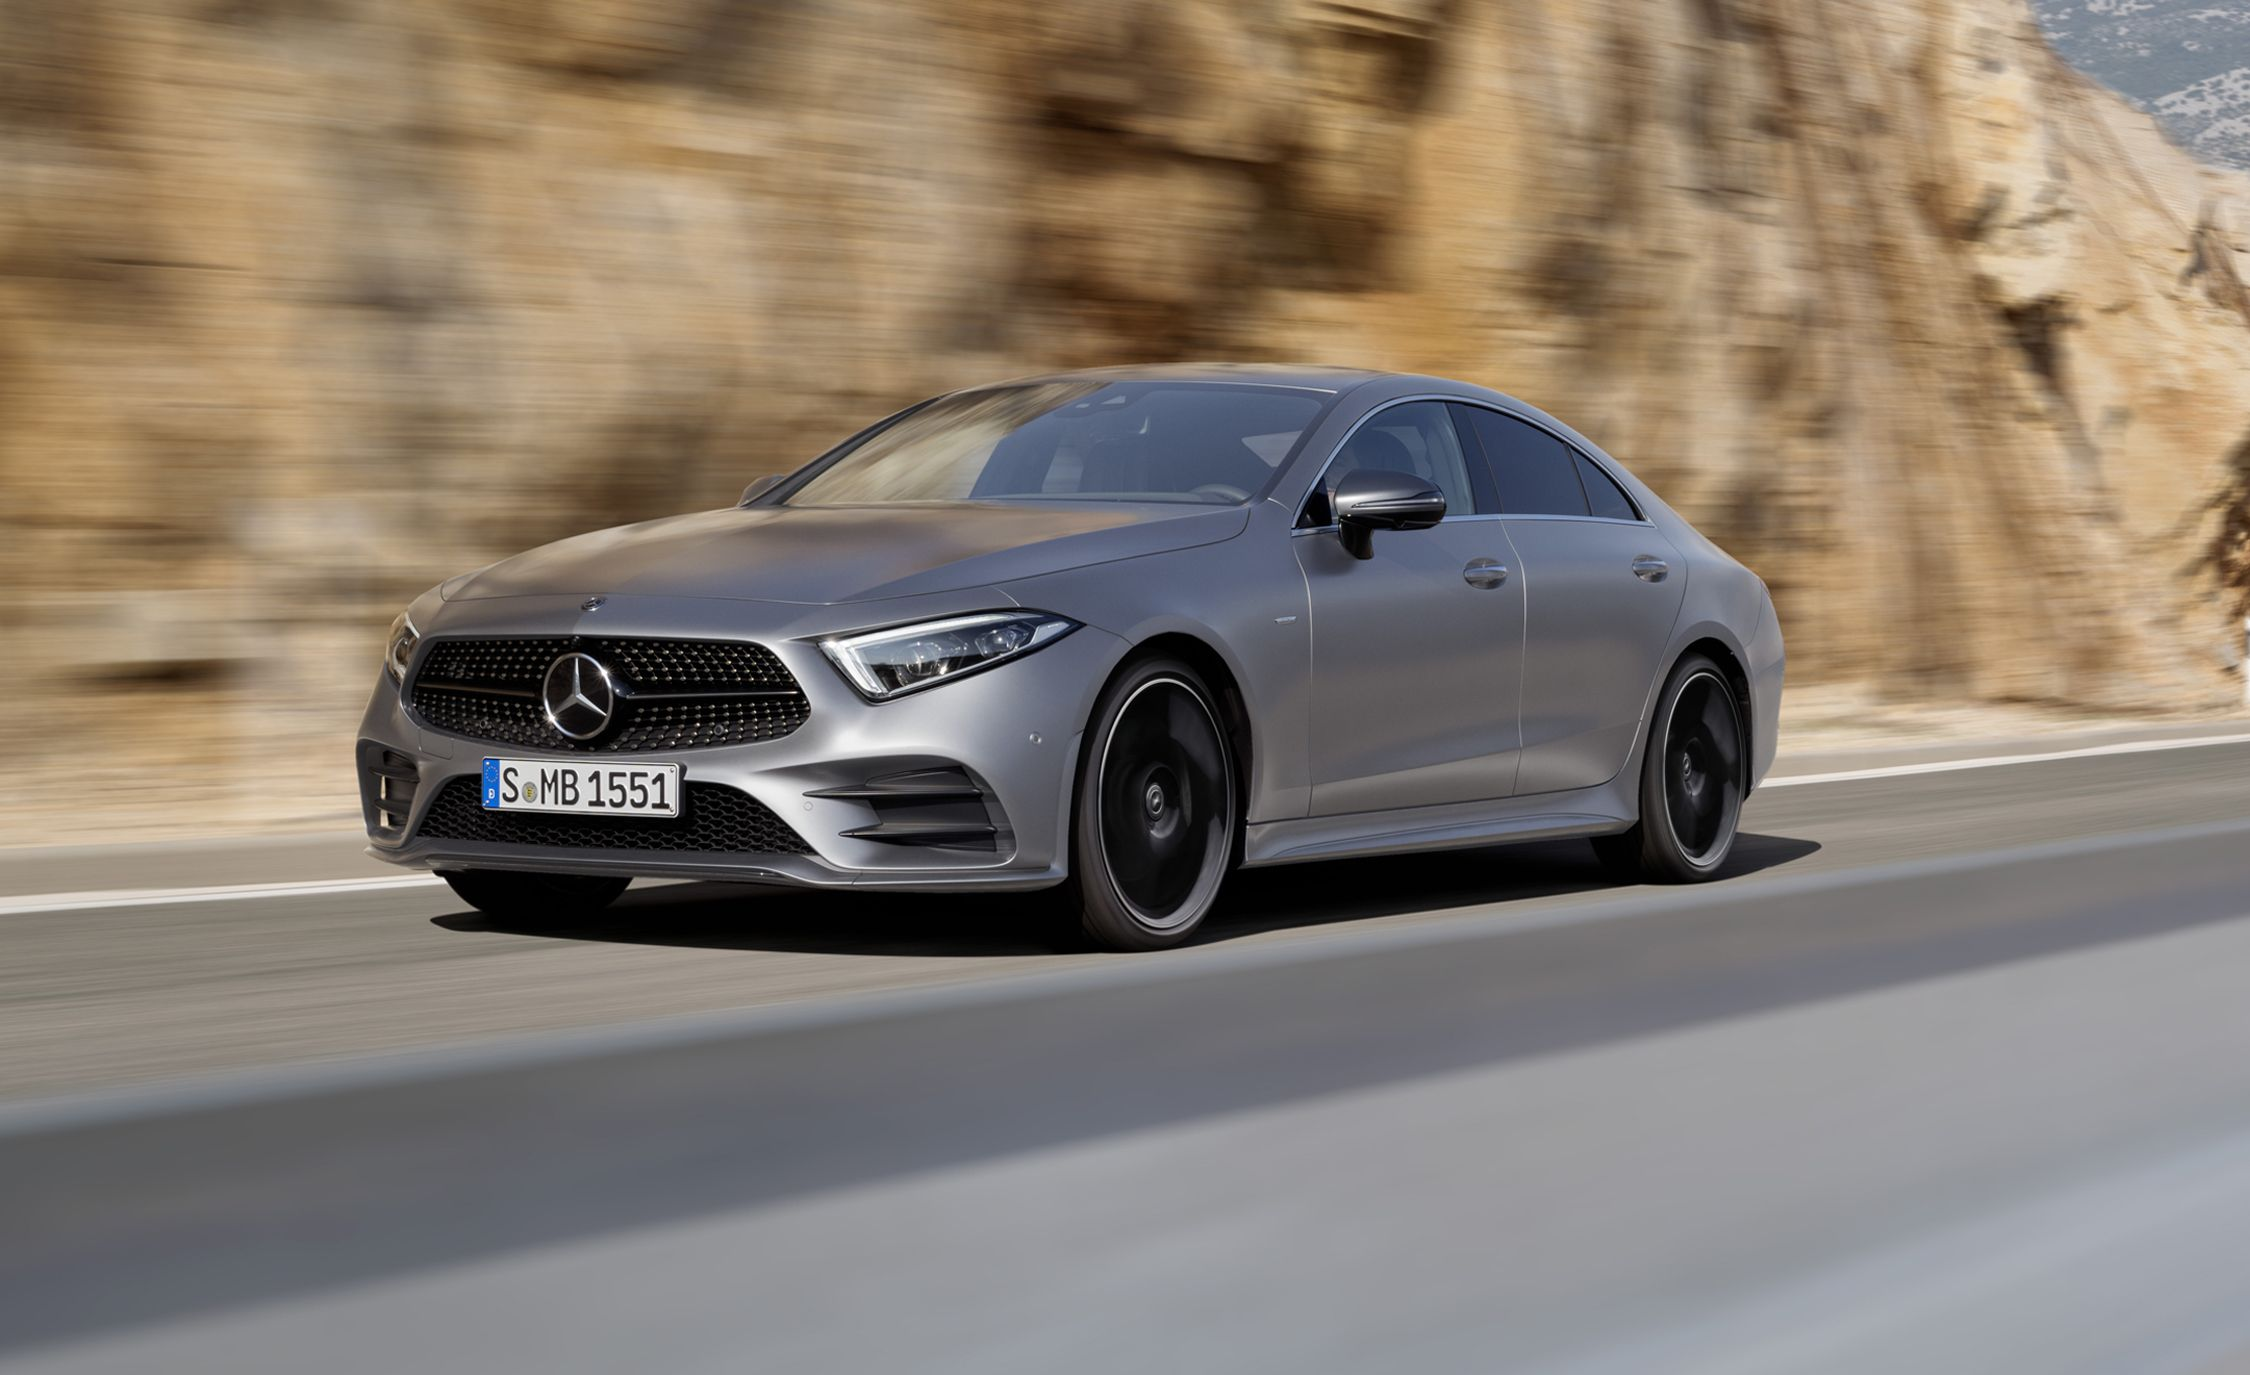 2019 Mercedes Benz CLS Class: Pretty Again, And Powered By An Inline